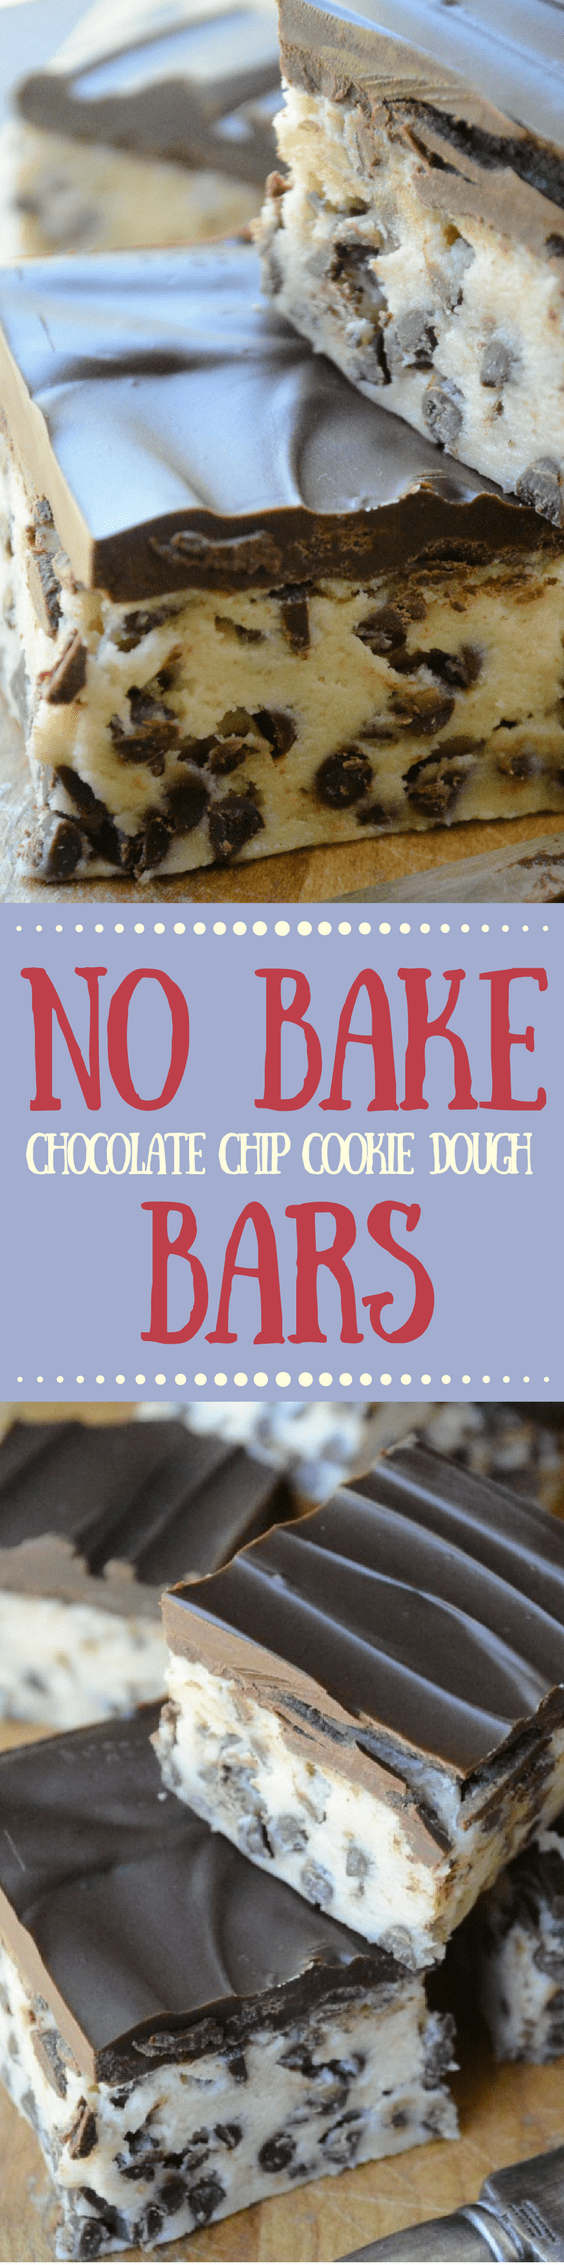 No Bake Chocolate Chip Cookie Dough Bars PIN